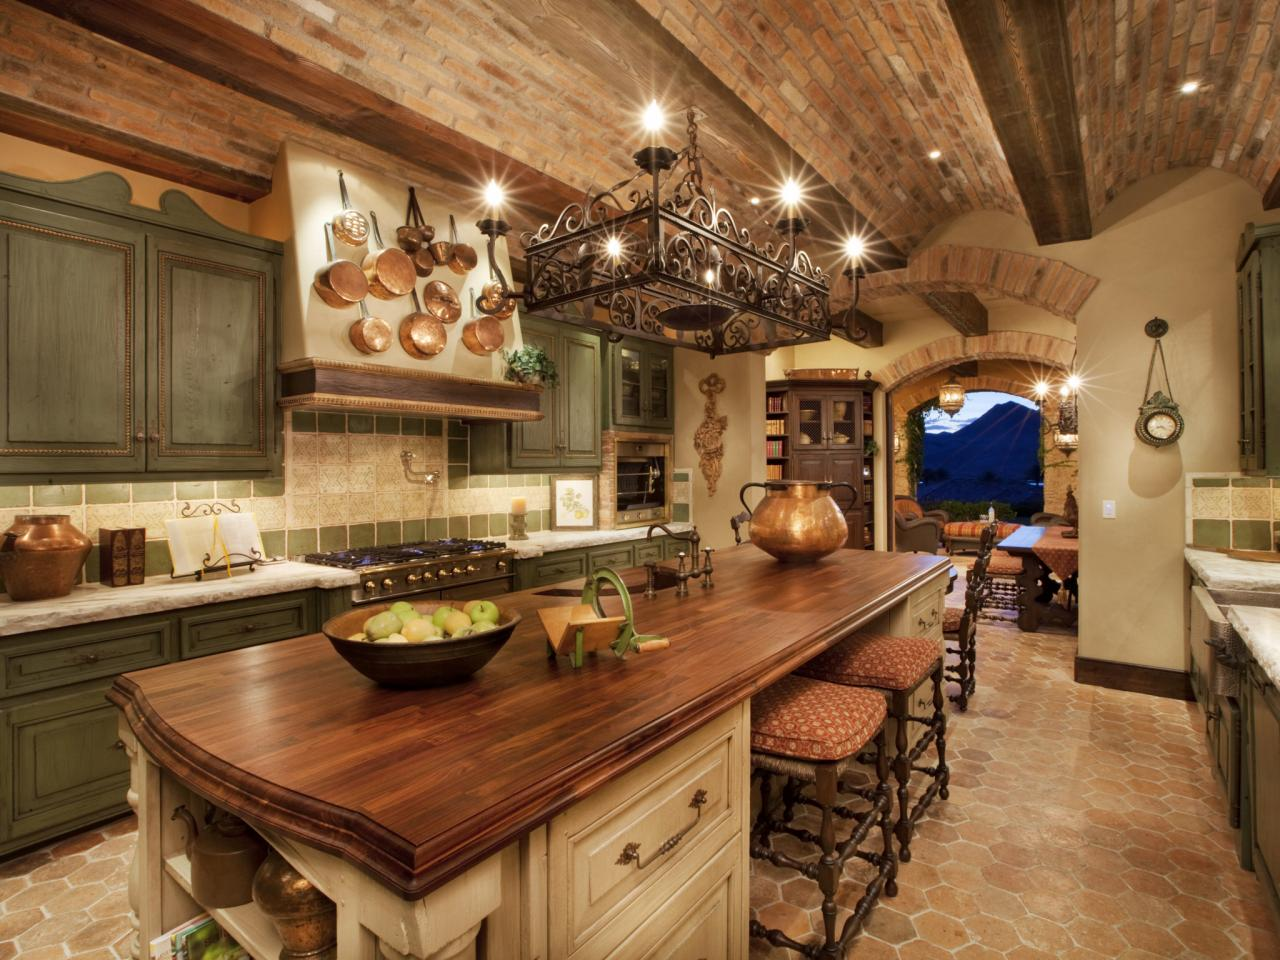 Tuscan Kitchen With Sage Cabinets and Brick Ceiling